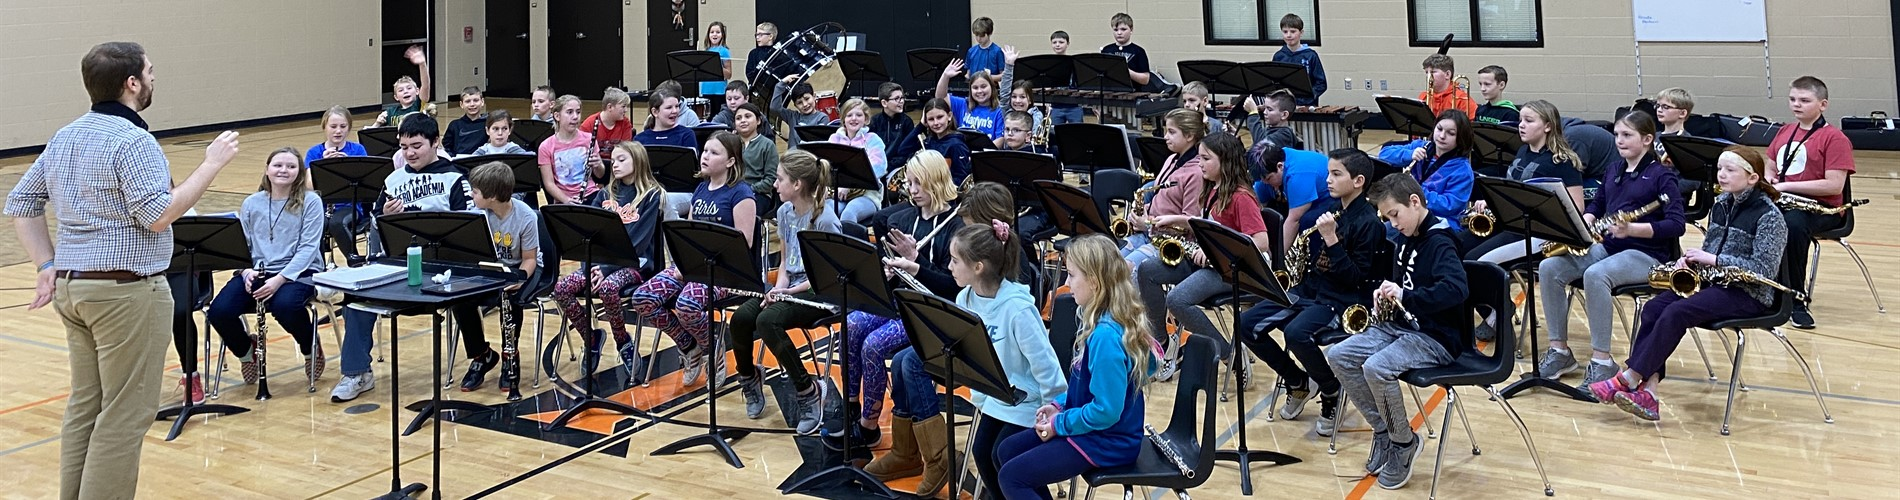 5th-grade students practice for their band concert in the middle school gym.